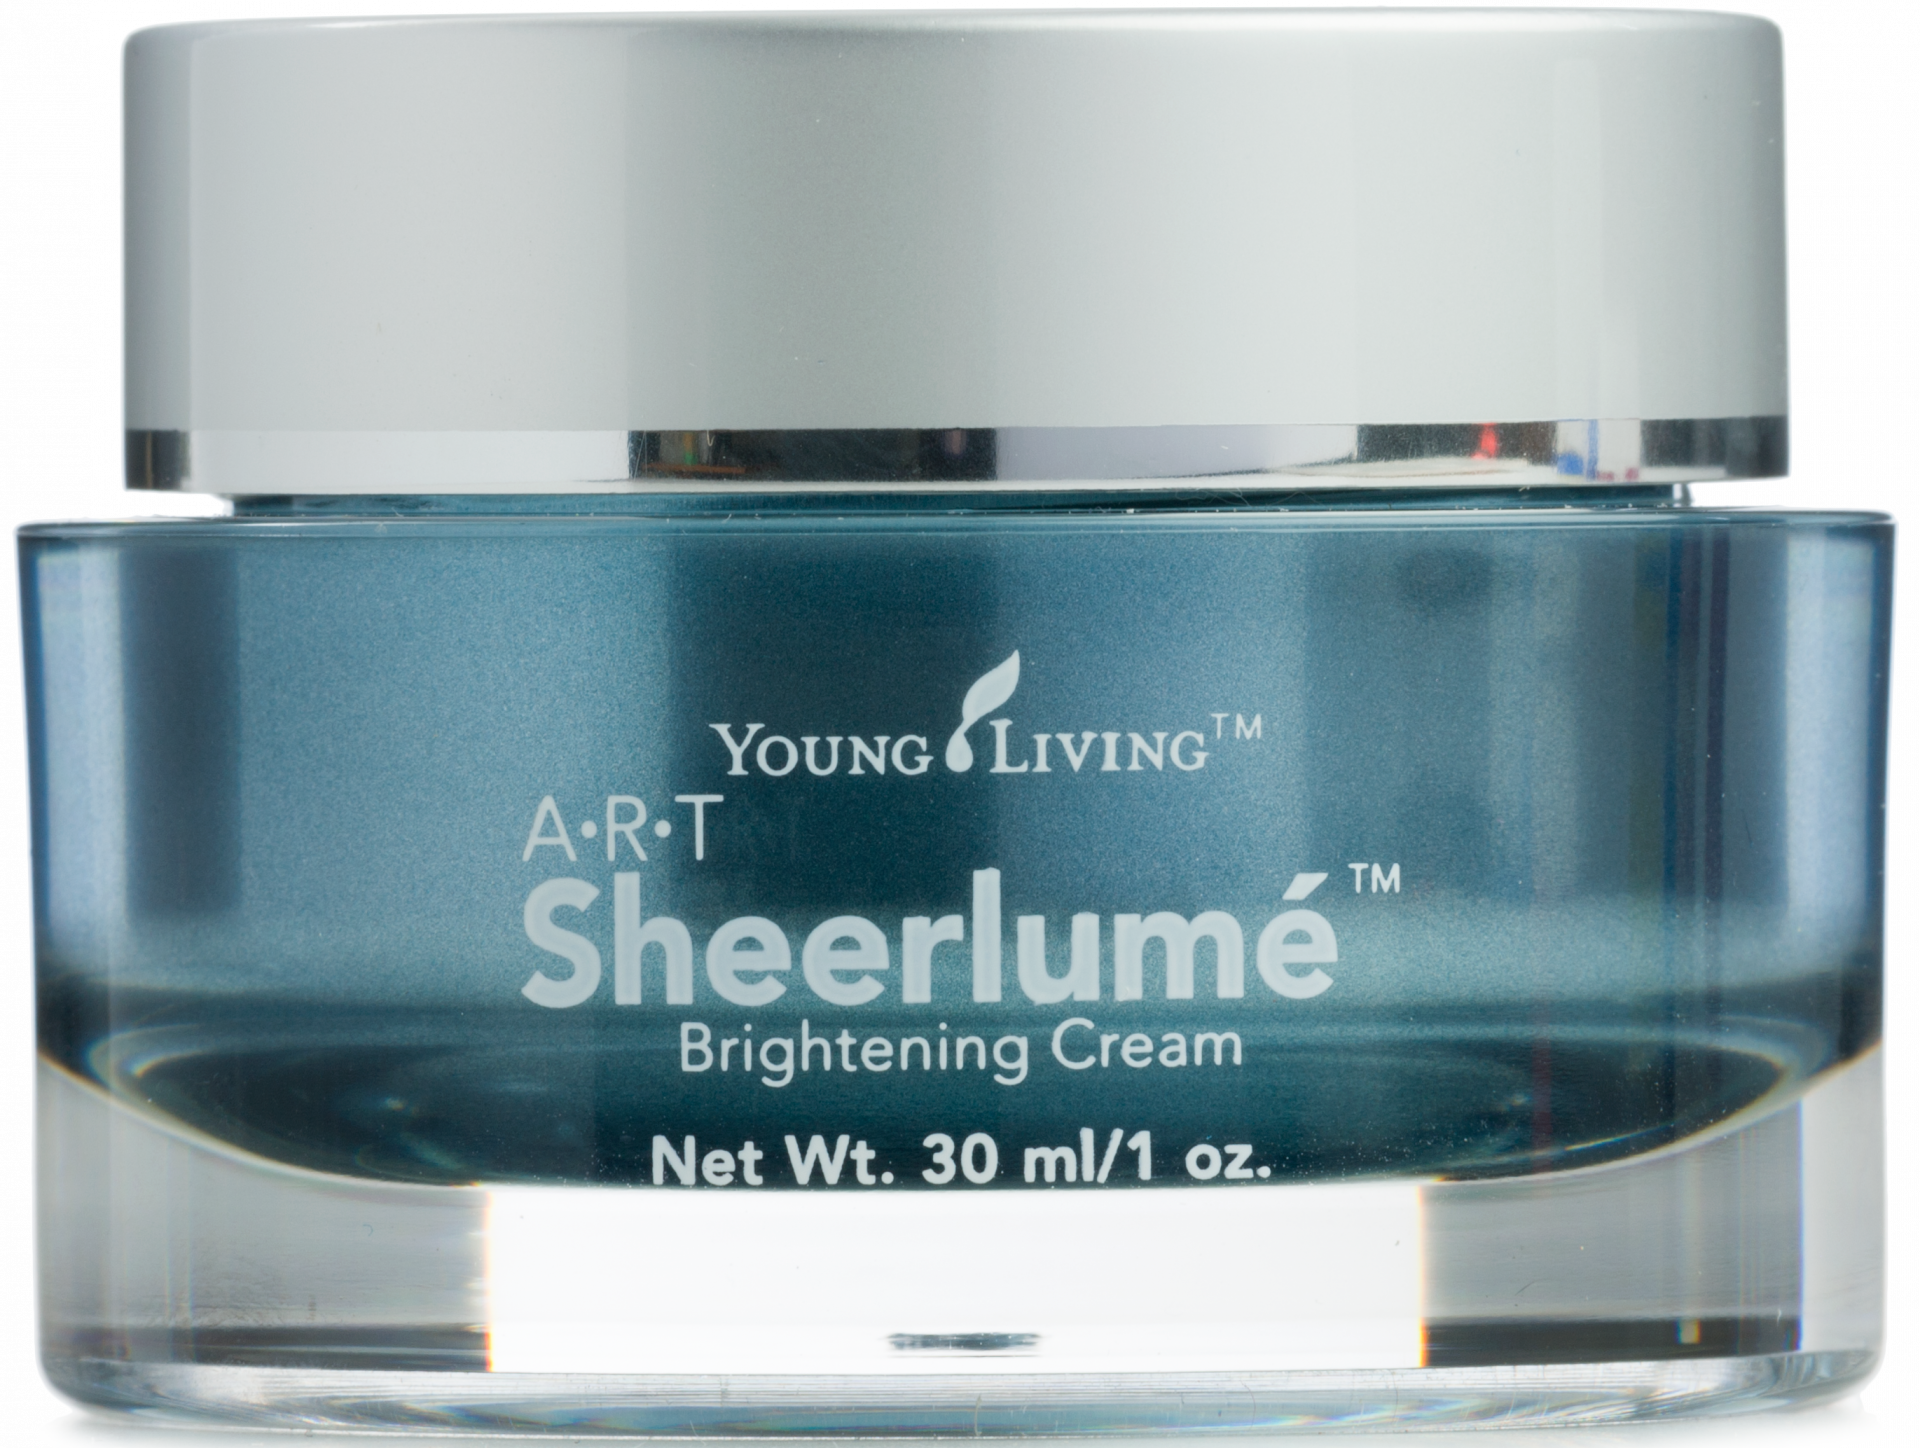 ART Sheerlume Brightening Cream